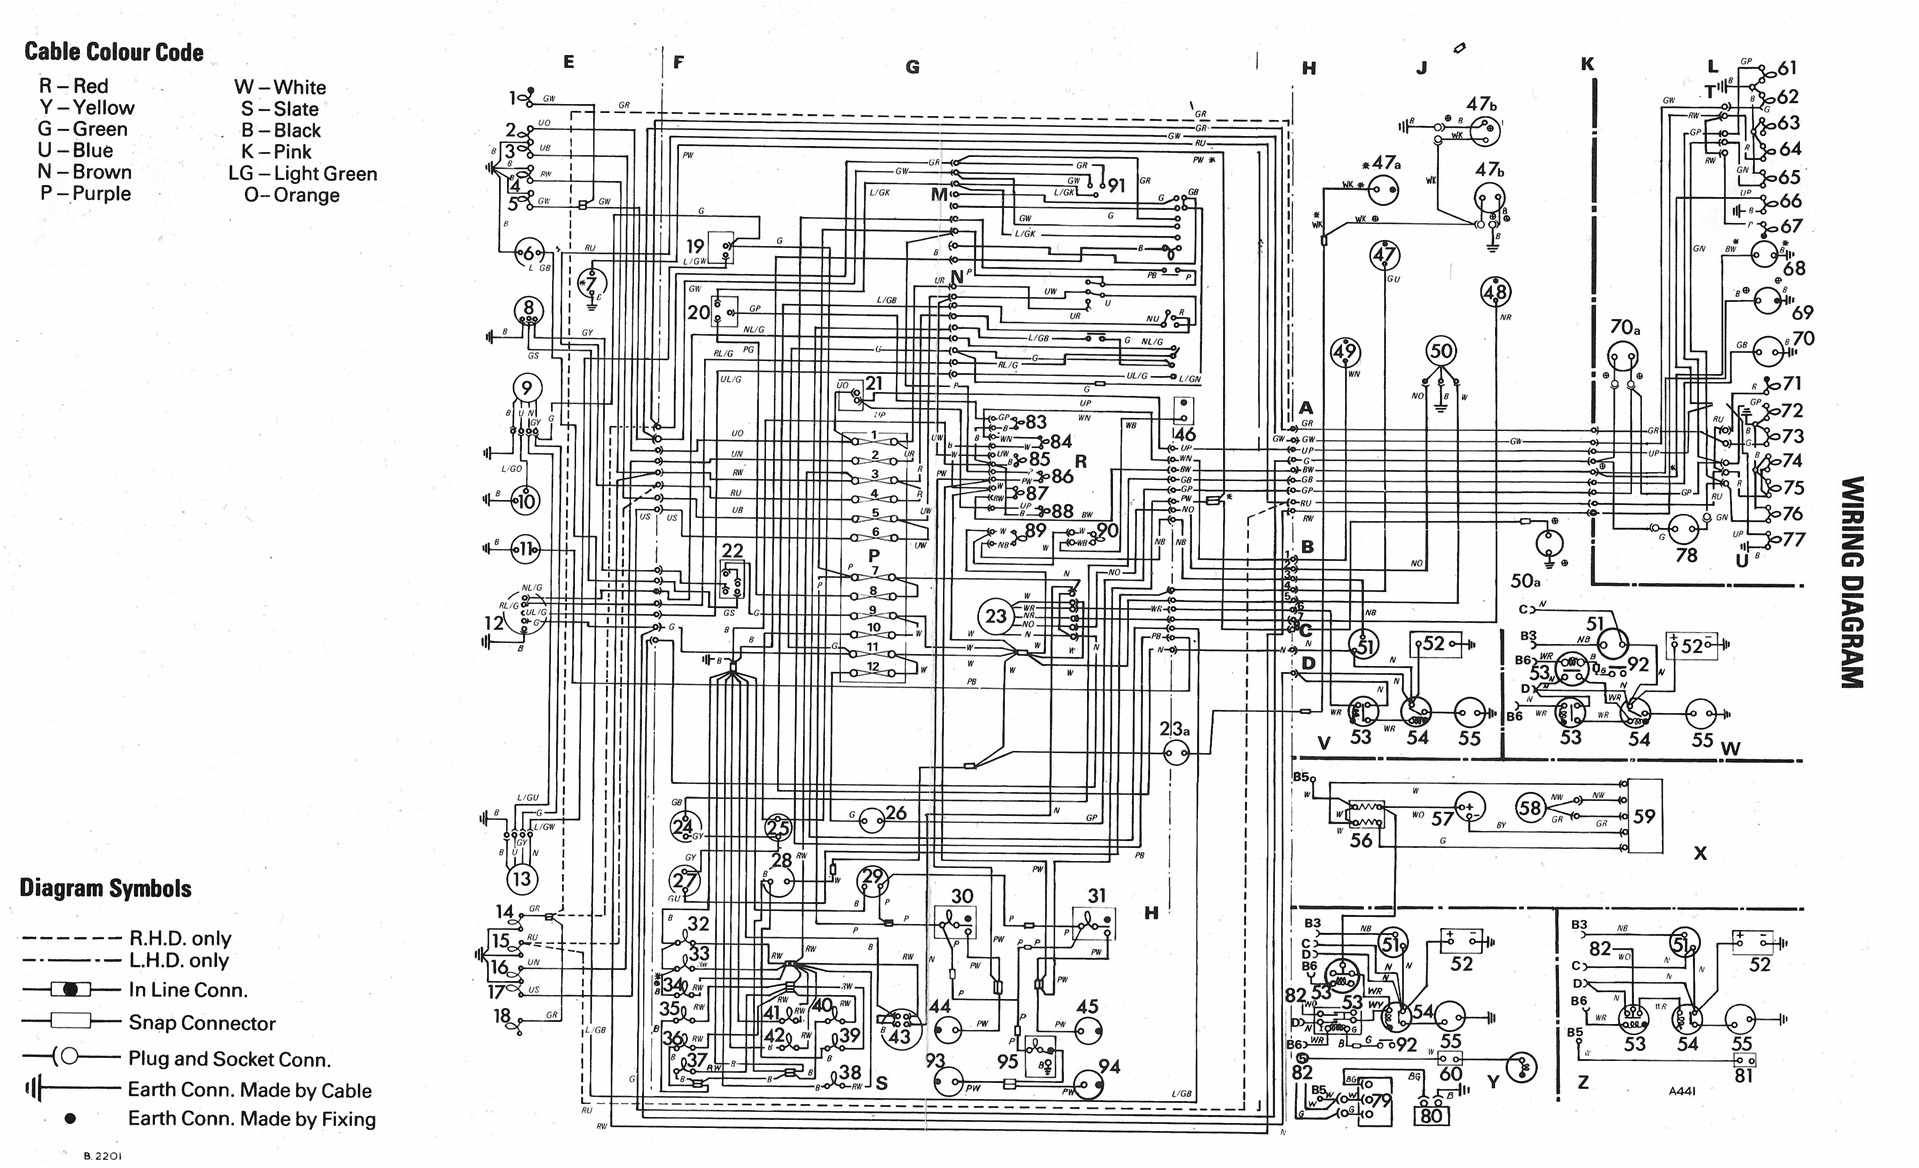 Vw Car Wiring Diagram Free For You 70 Diagrams Golf Google Search Dff Pinterest Rh Com 1974 Super Beetle